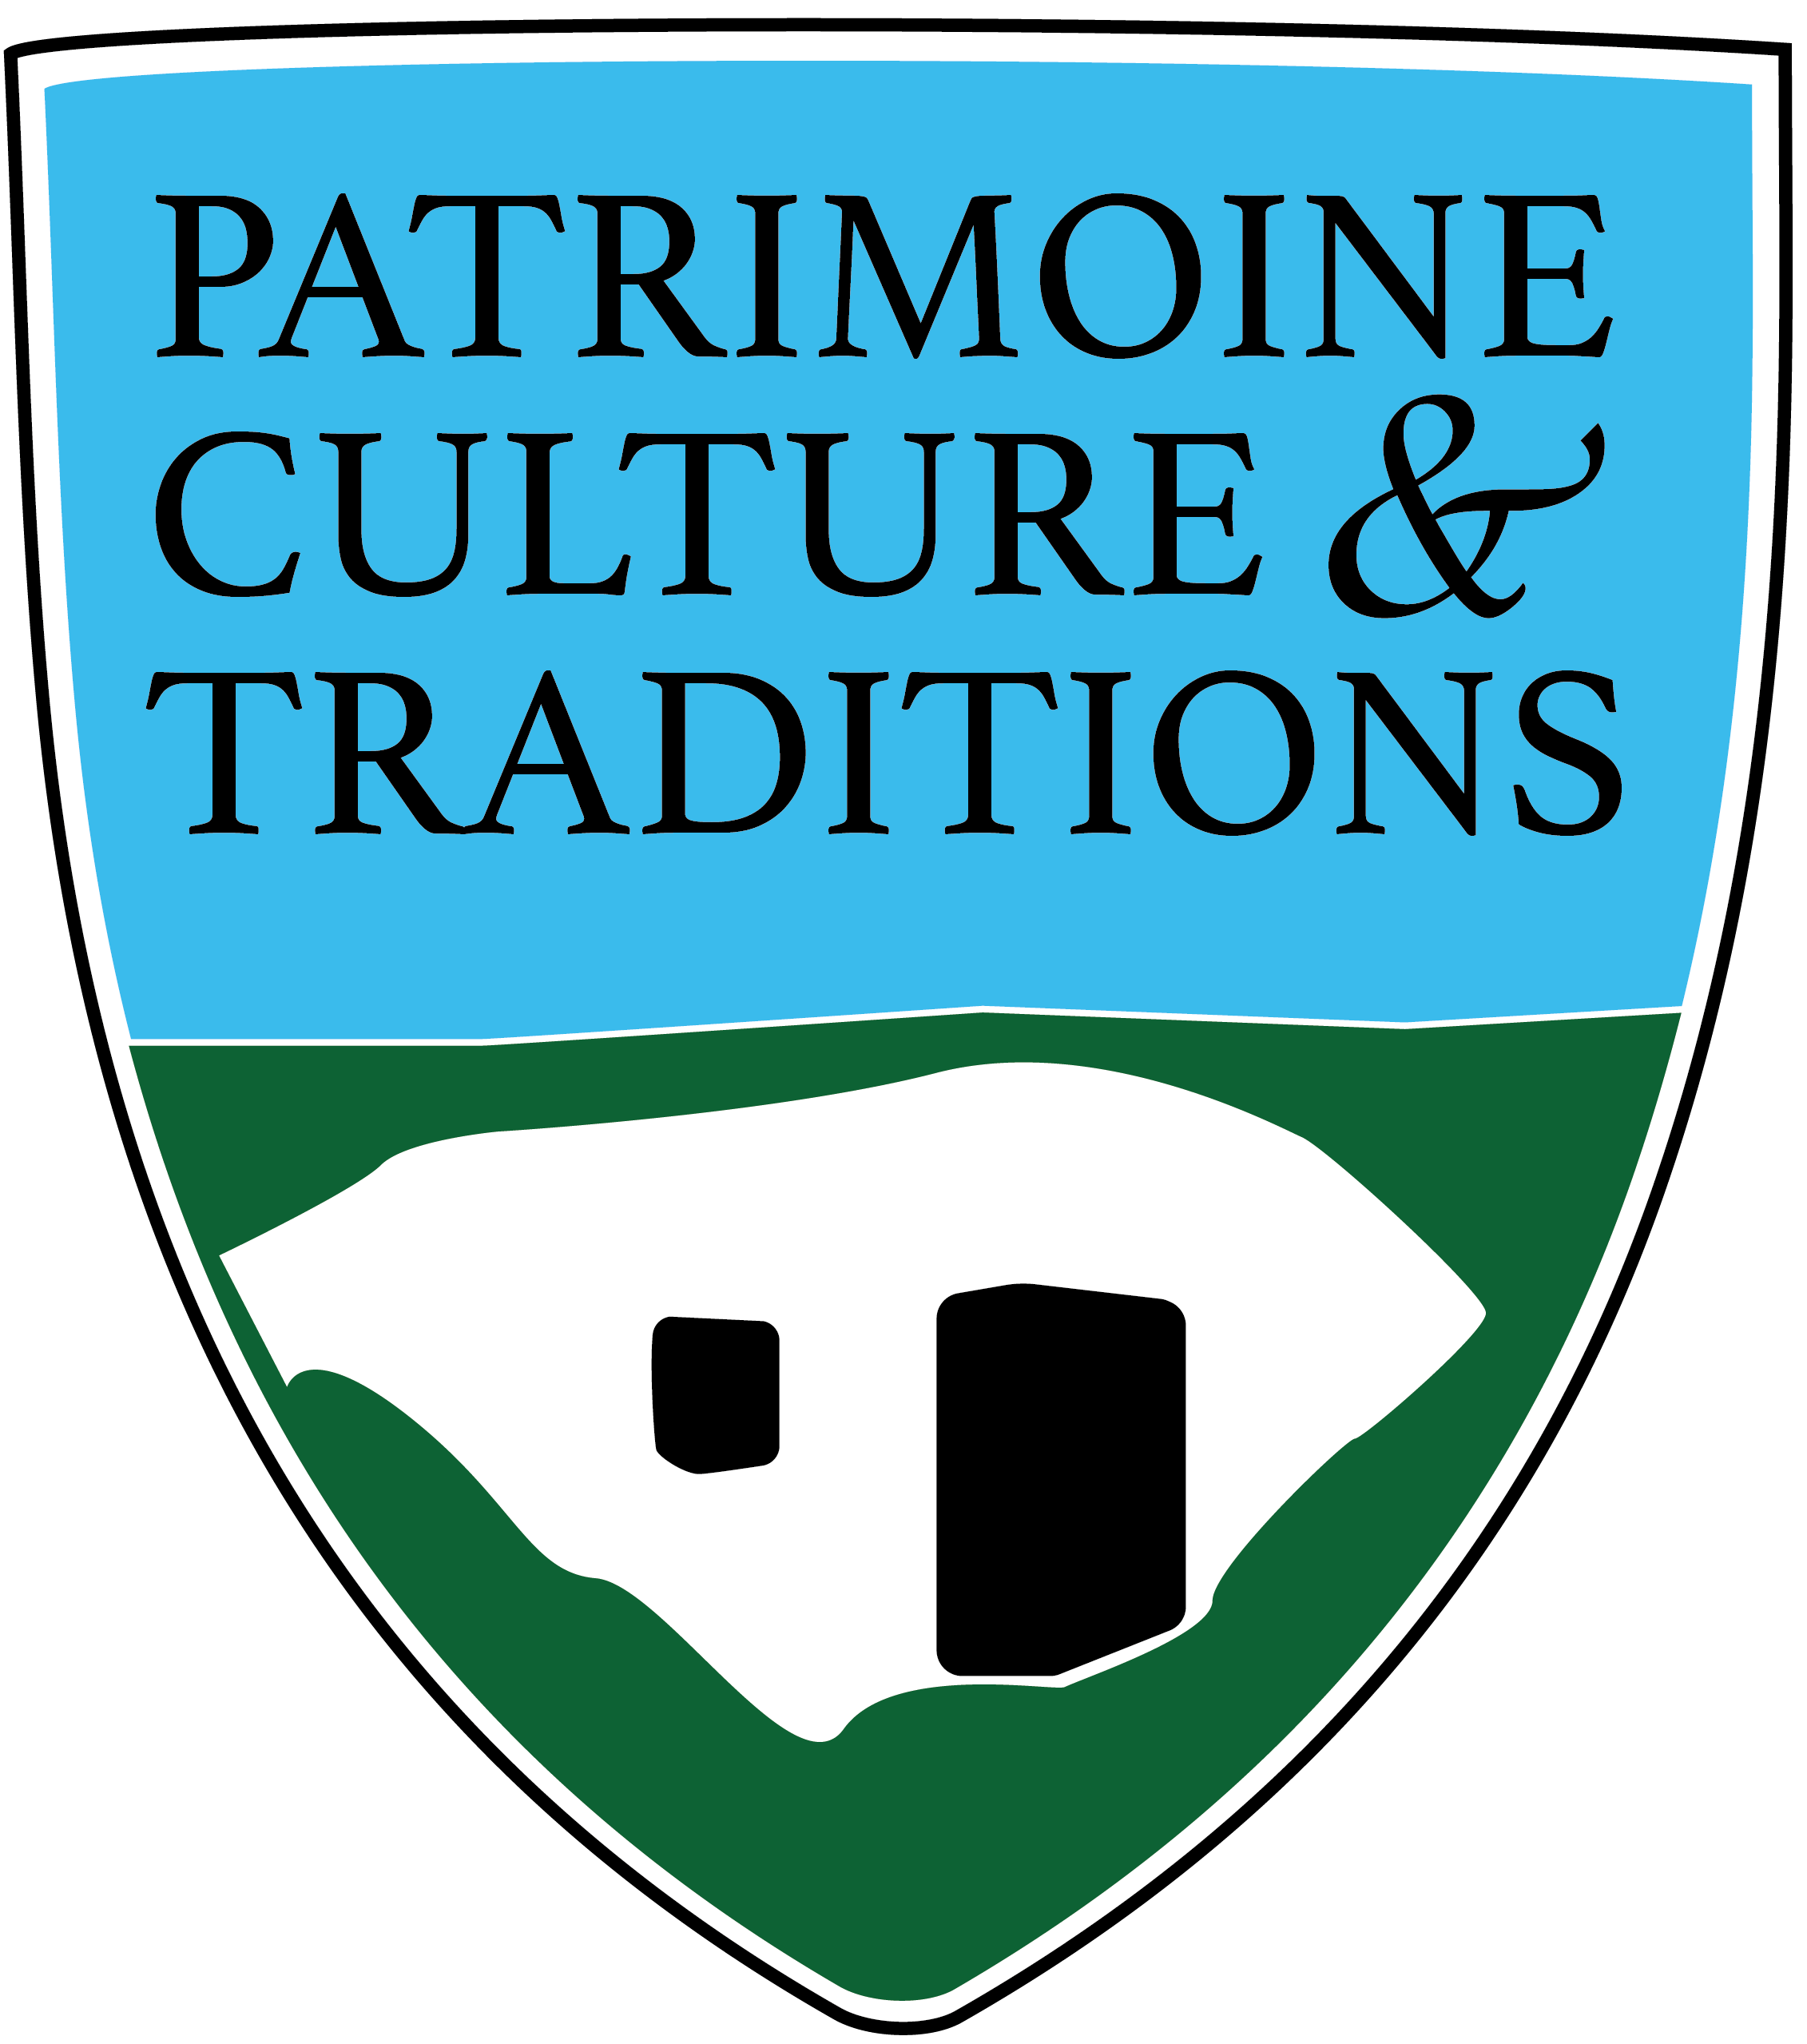 Patrimoine Culture et Traditions